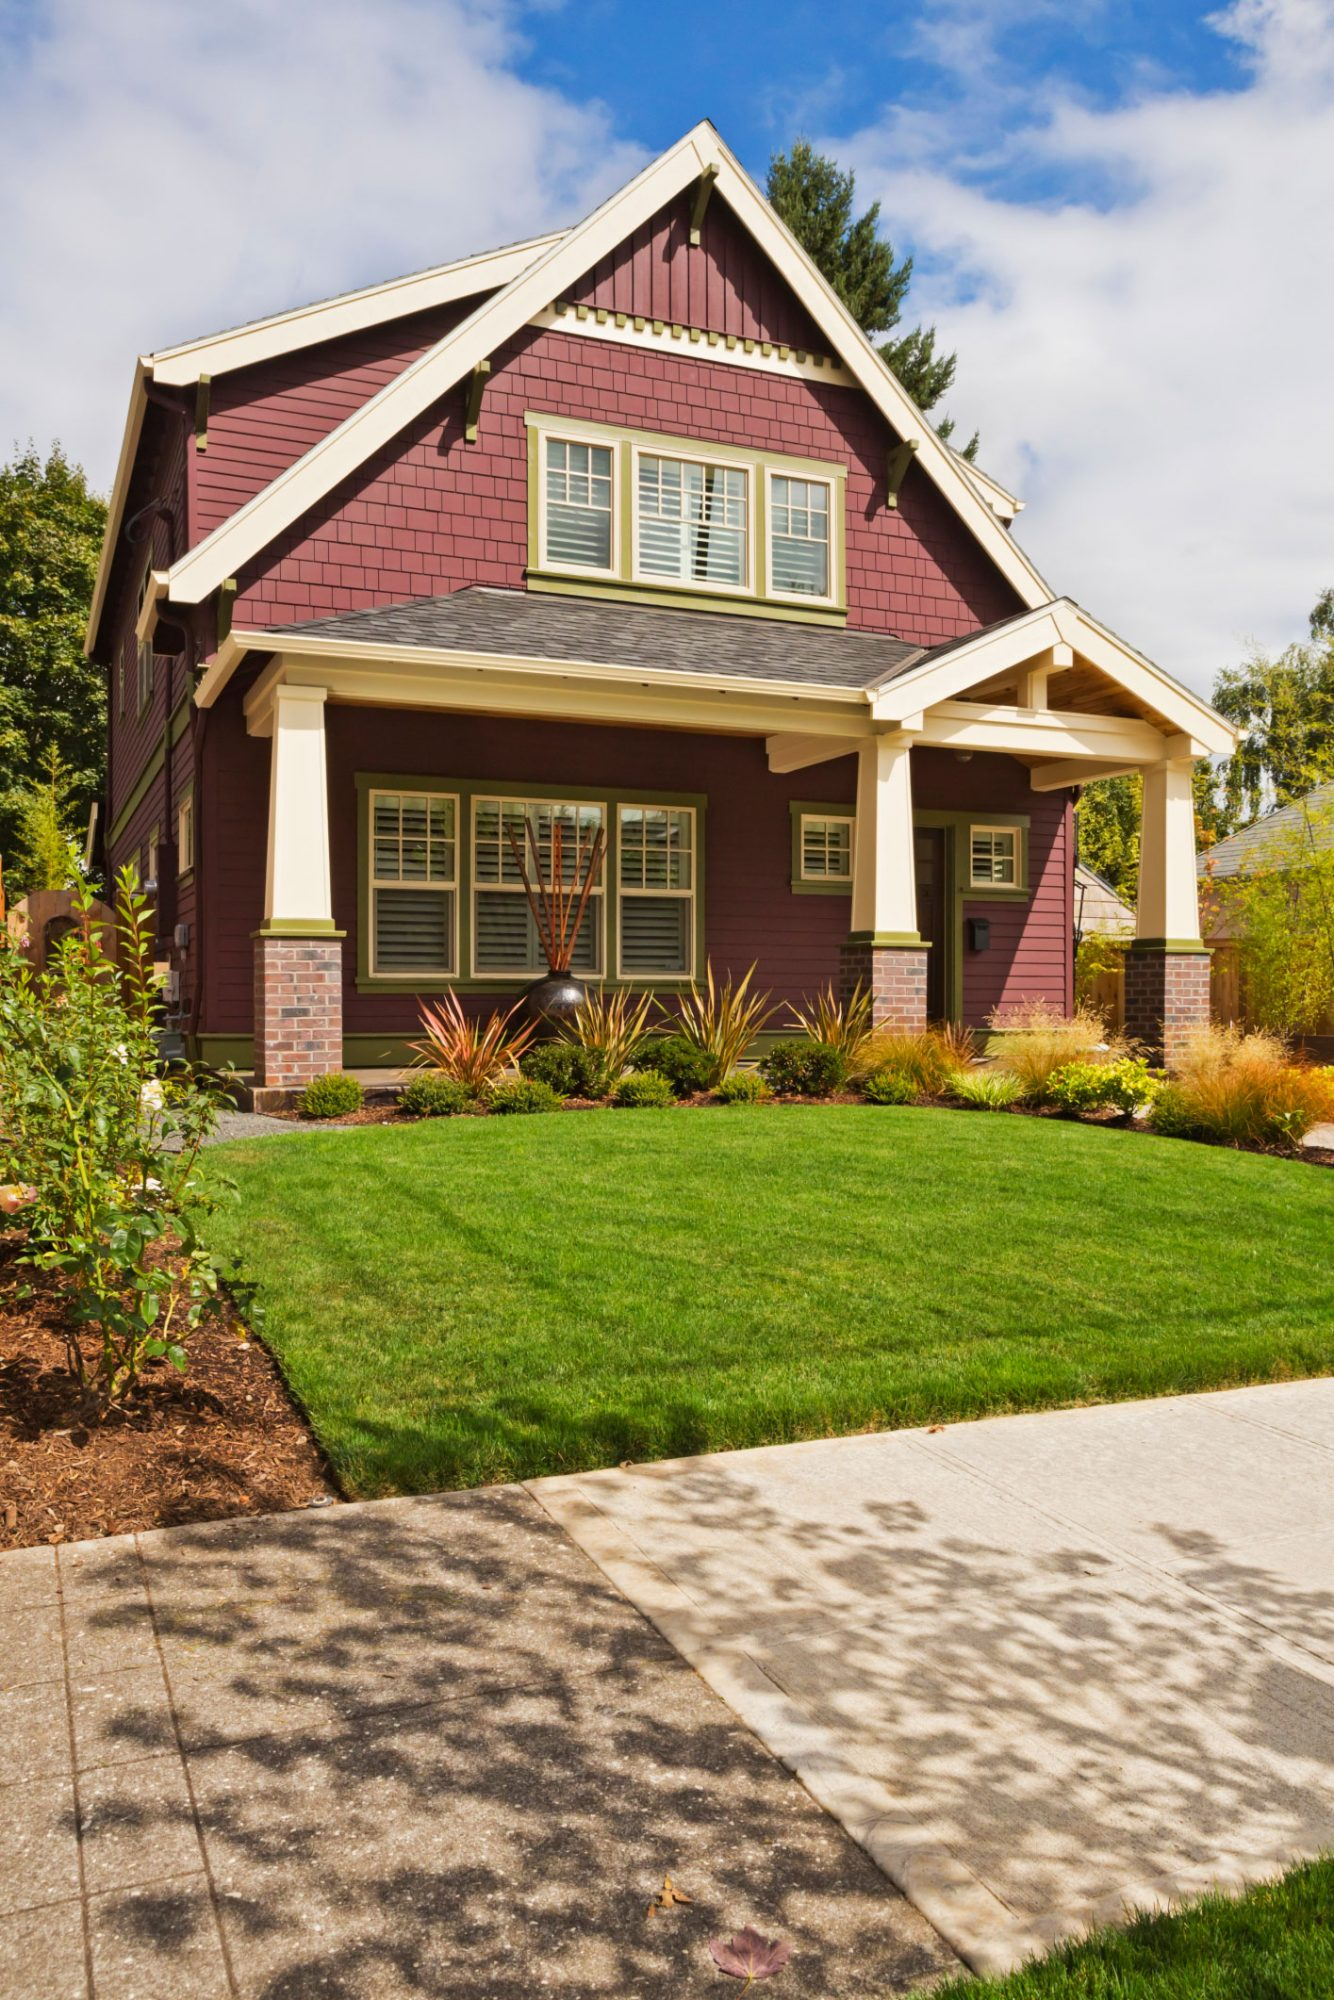 10 Quick Curb Appeal Fixes to Sell Your House Faster